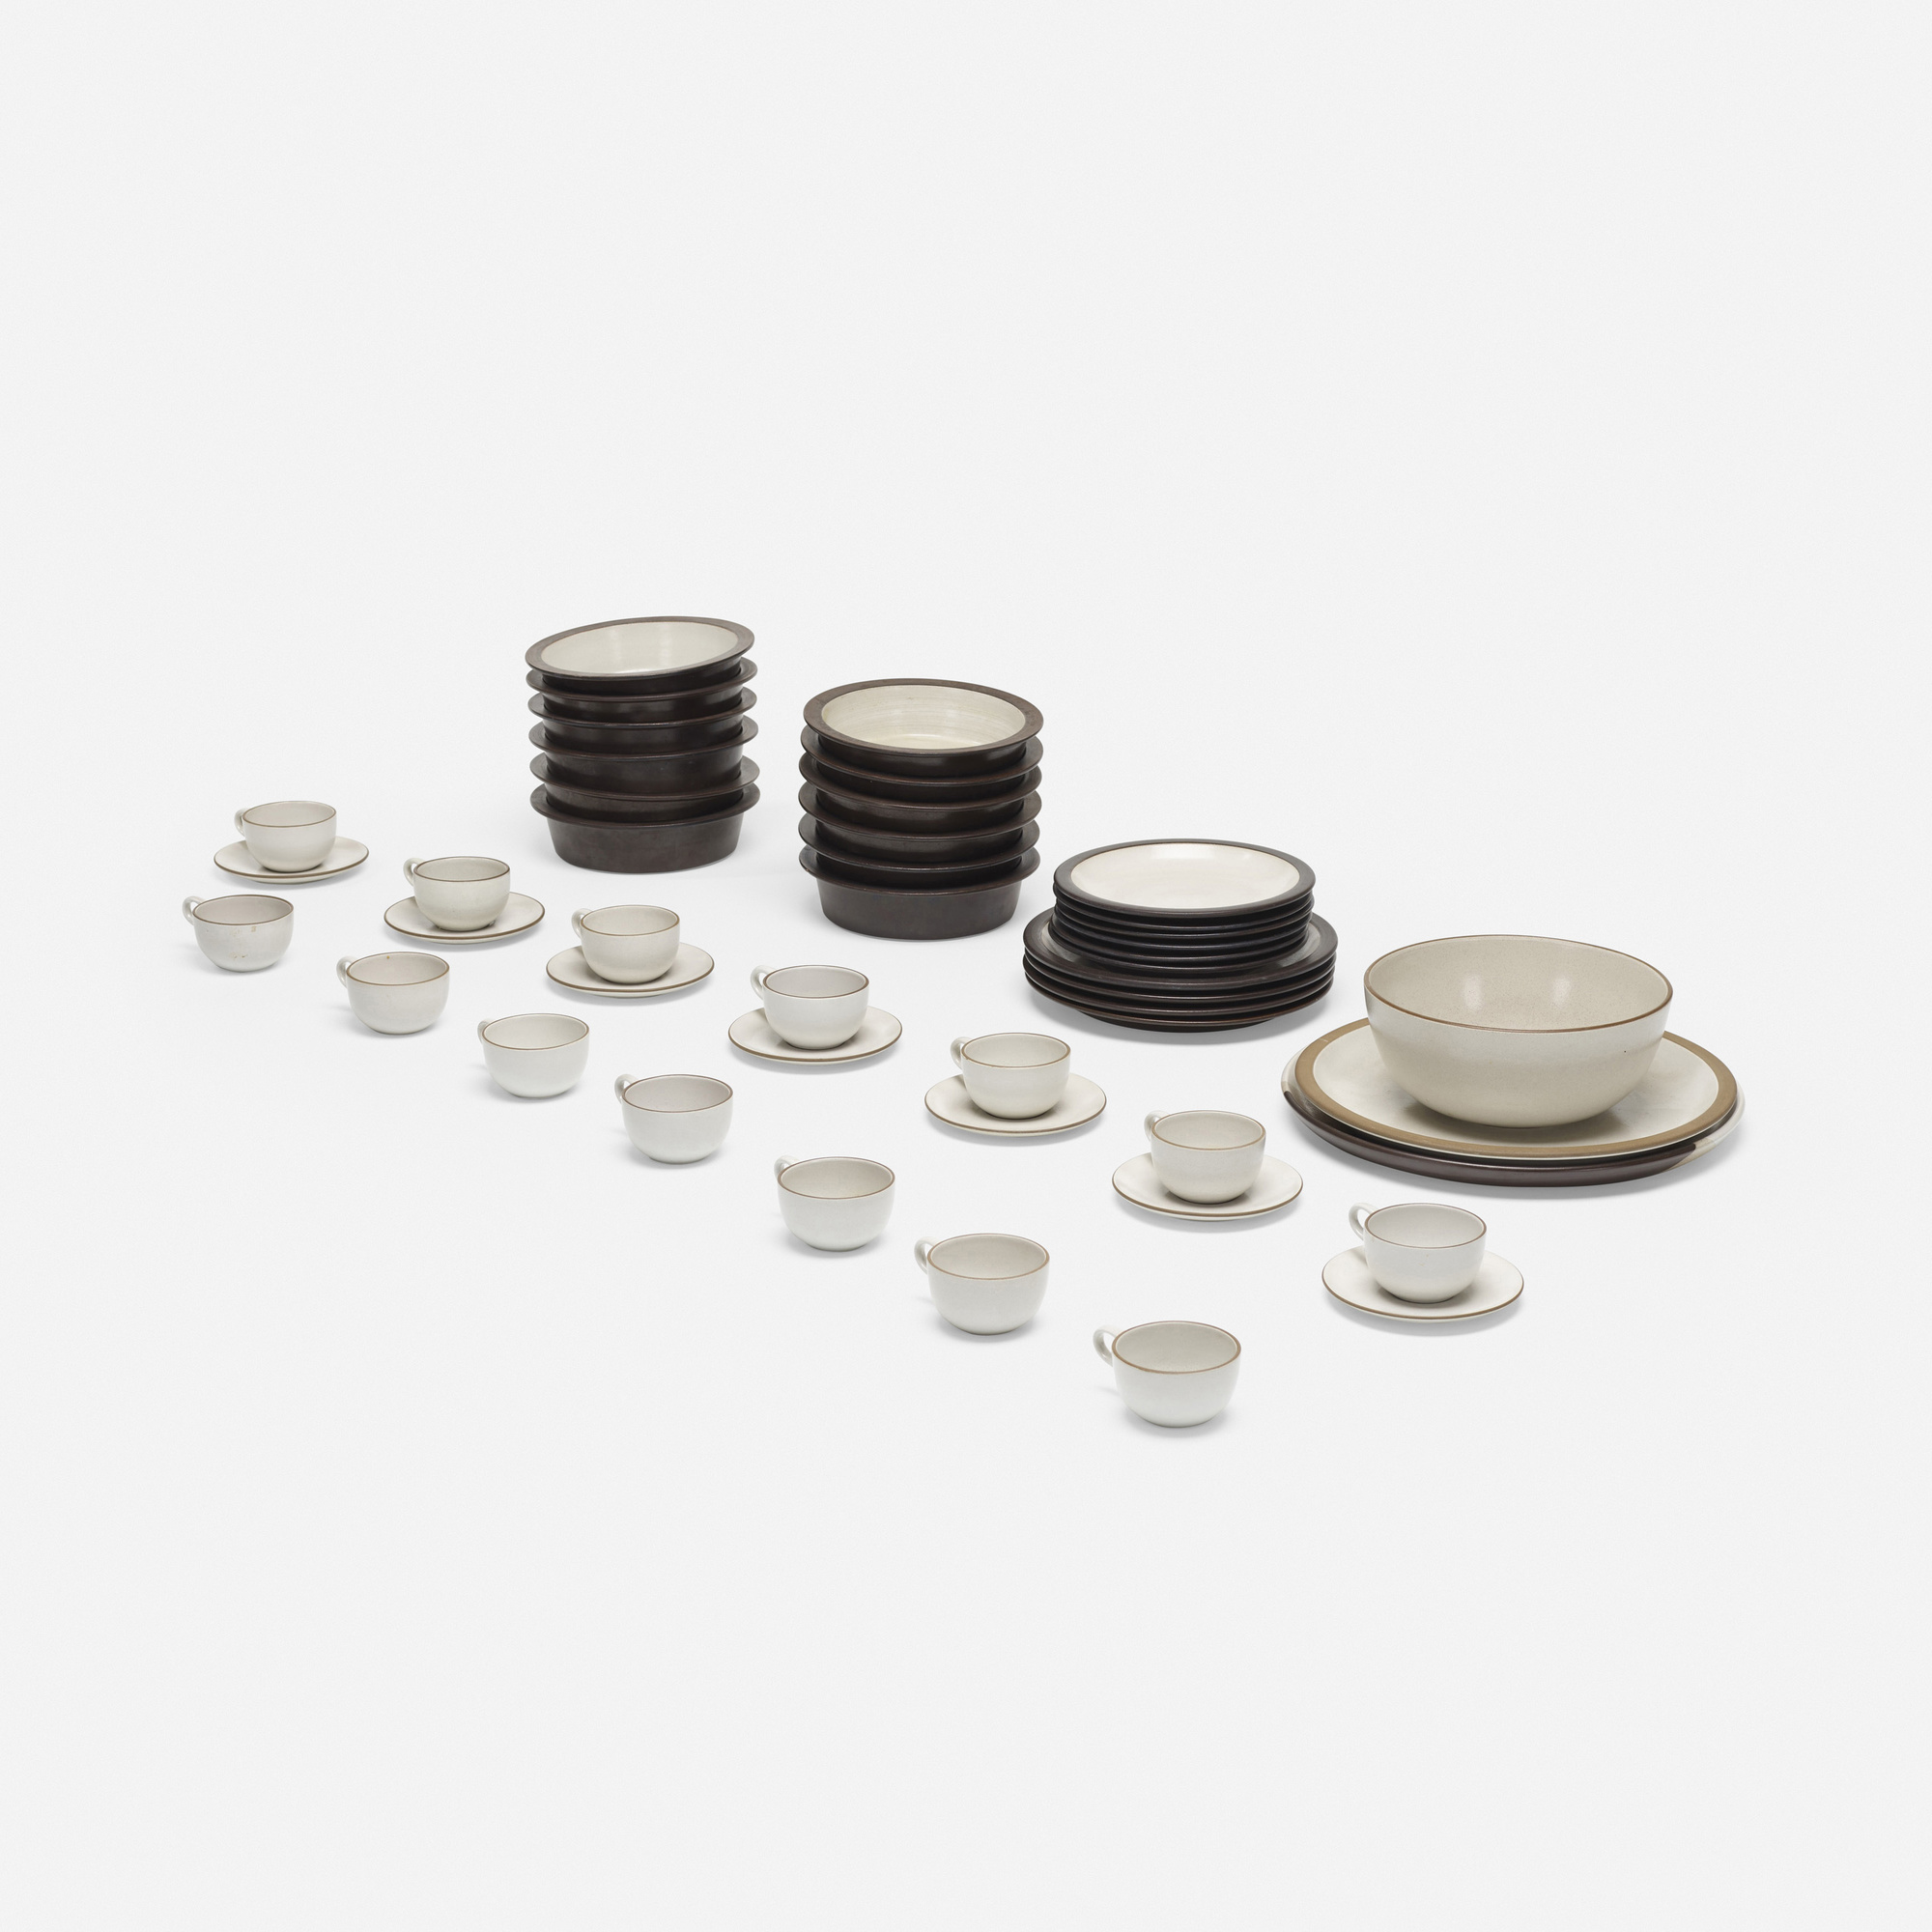 345: Heath / dinnerware collection (1 of 3)